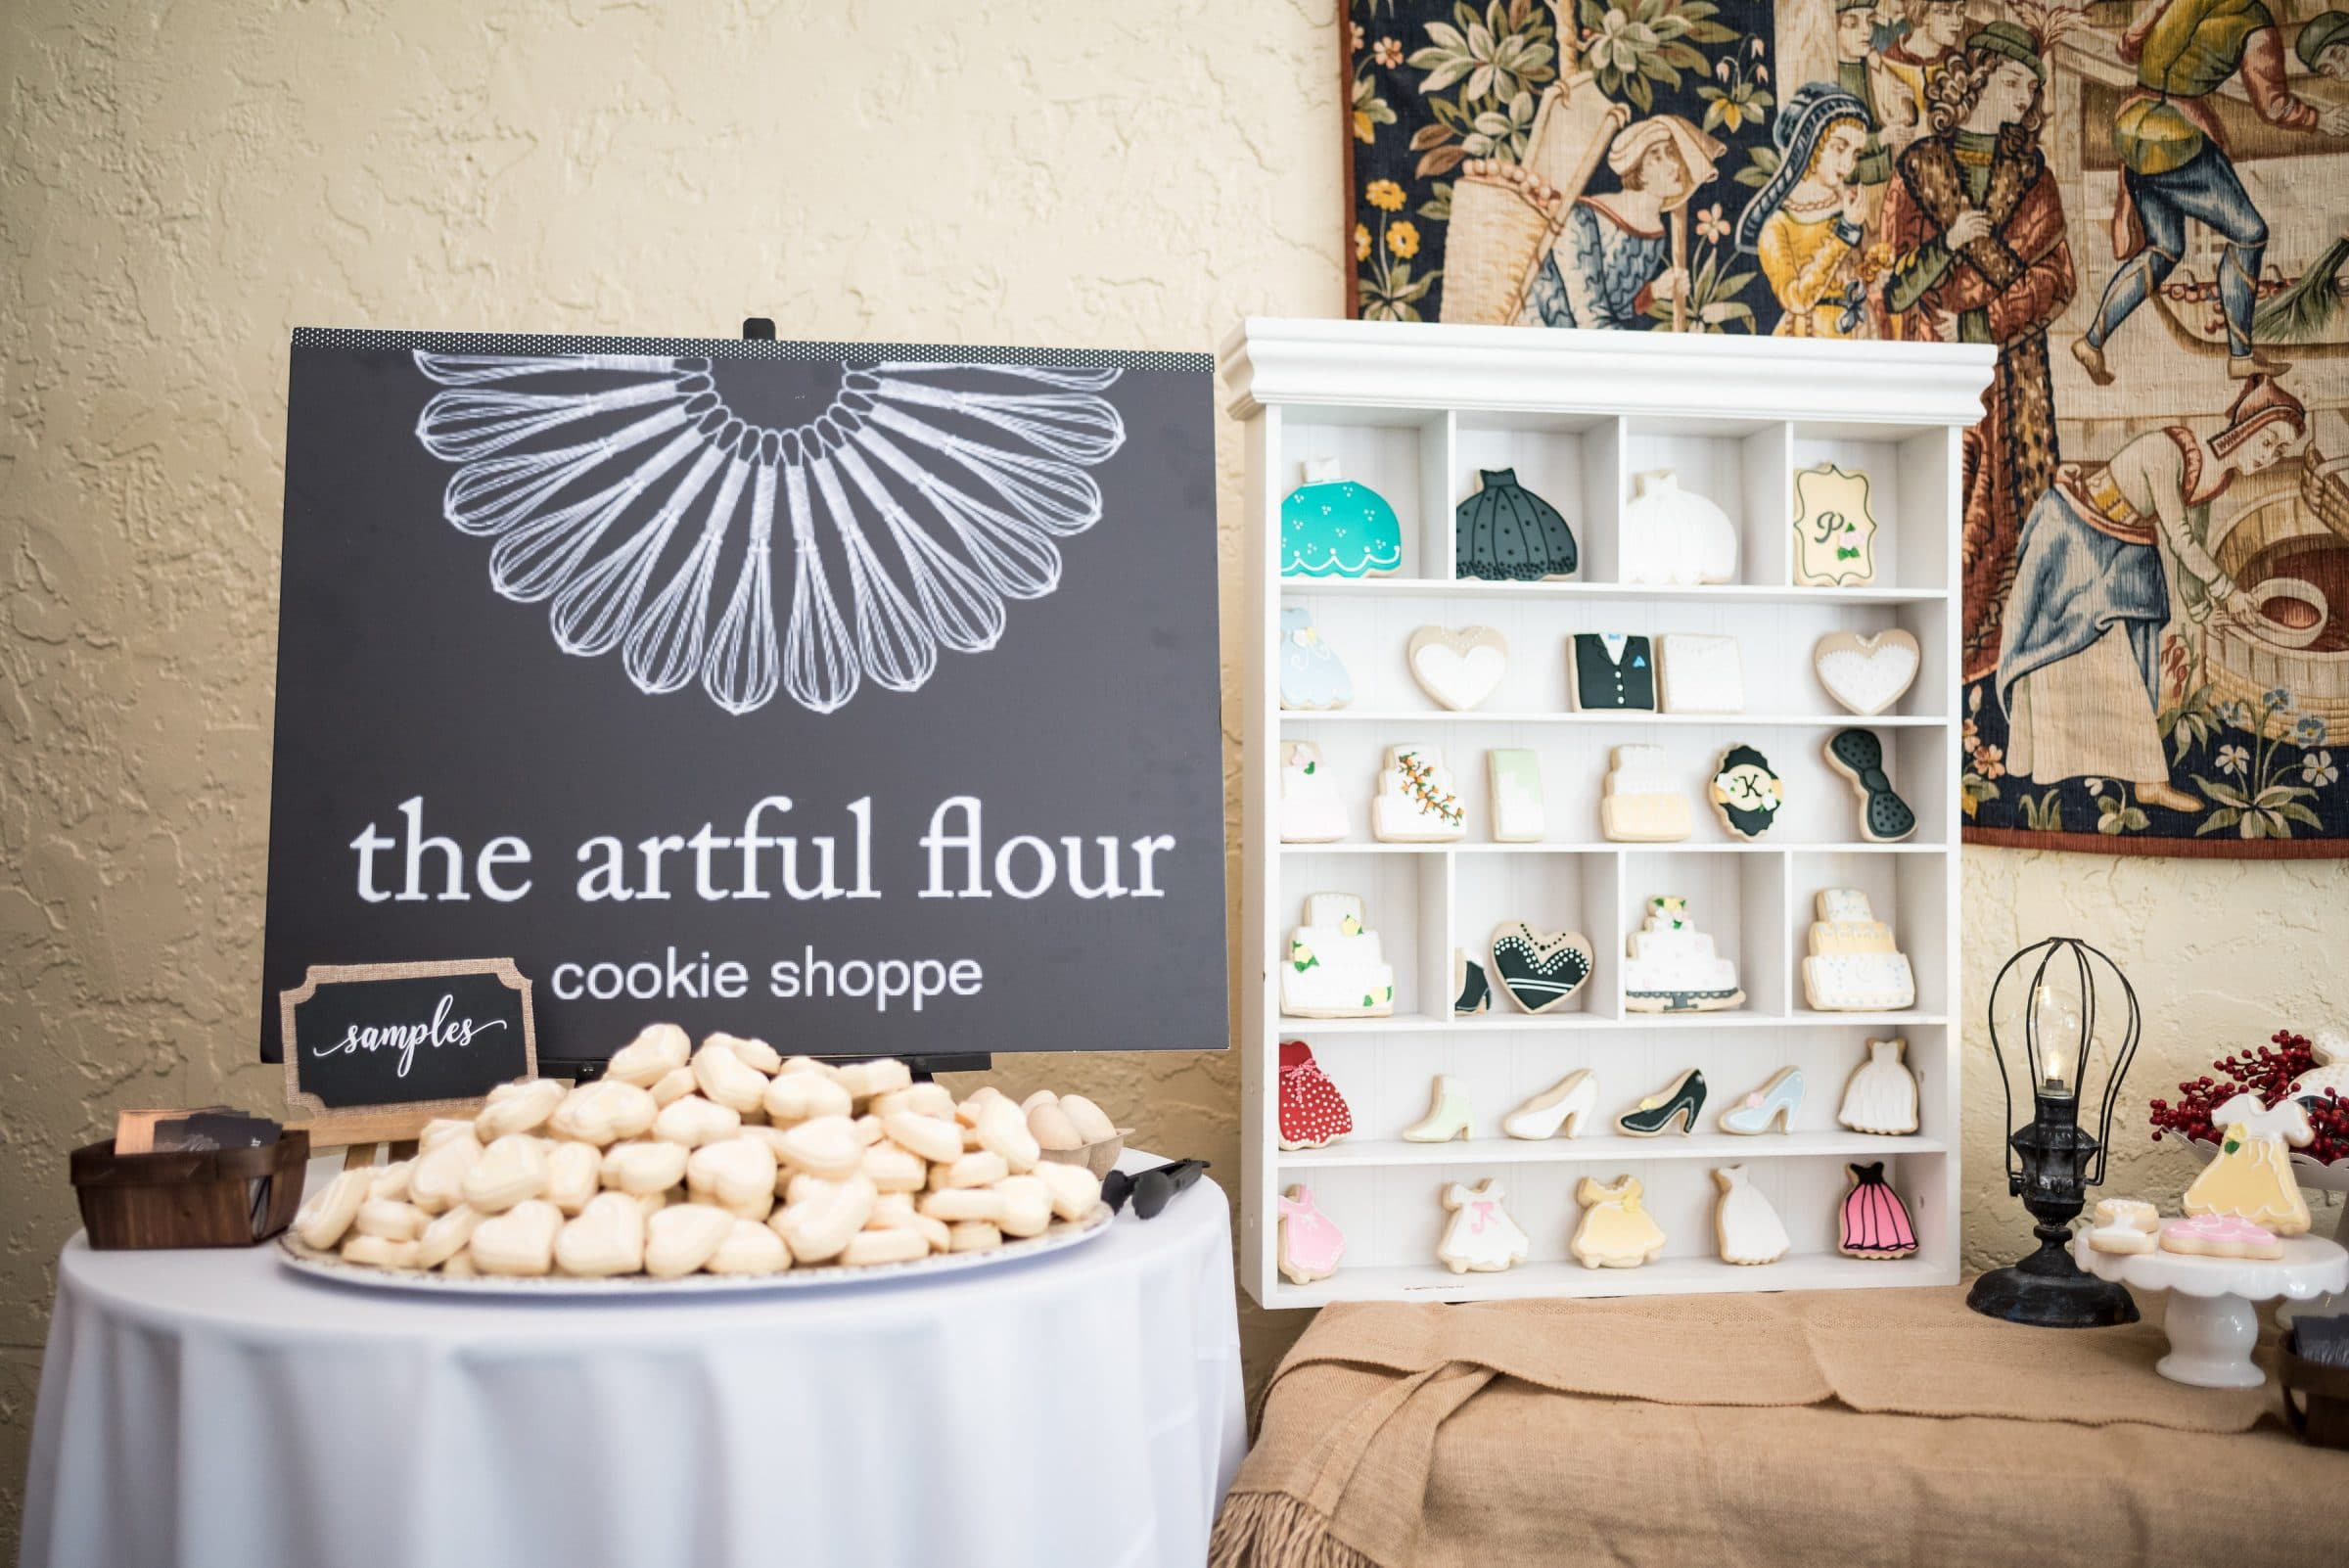 Display of Cookies with a sign that reads the Artful Flower